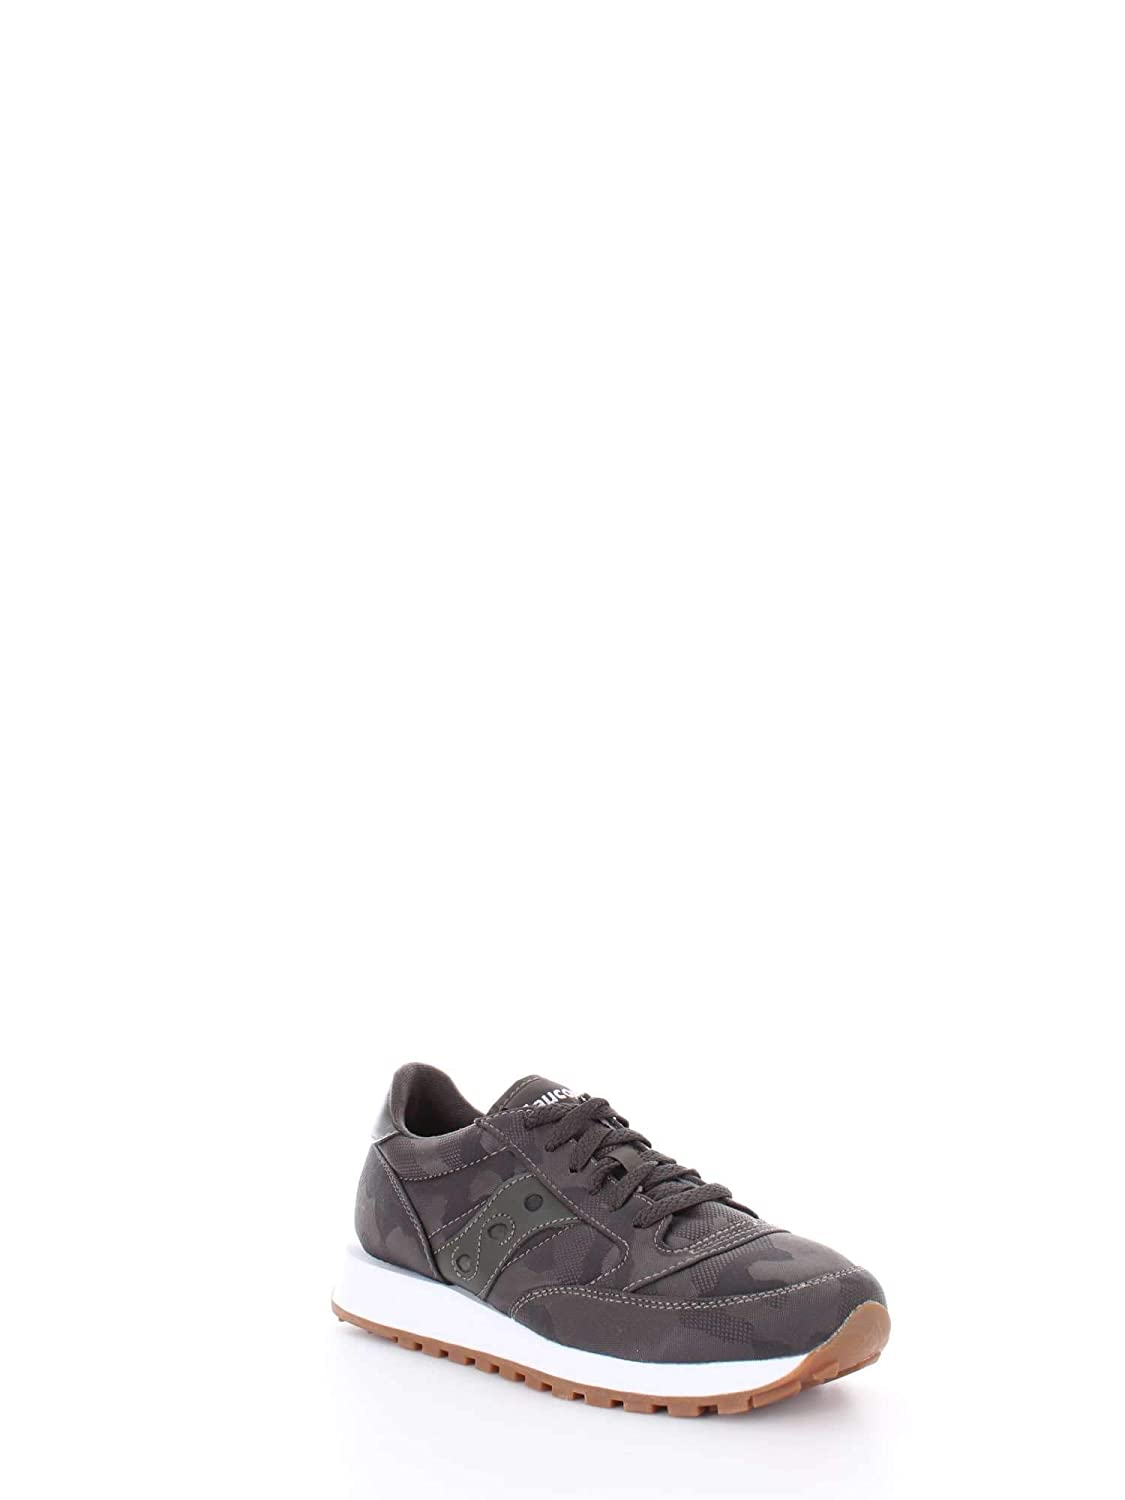 4ed644baed Amazon.com | Saucony Originals Men's Jazz Original Sneaker | Fashion ...